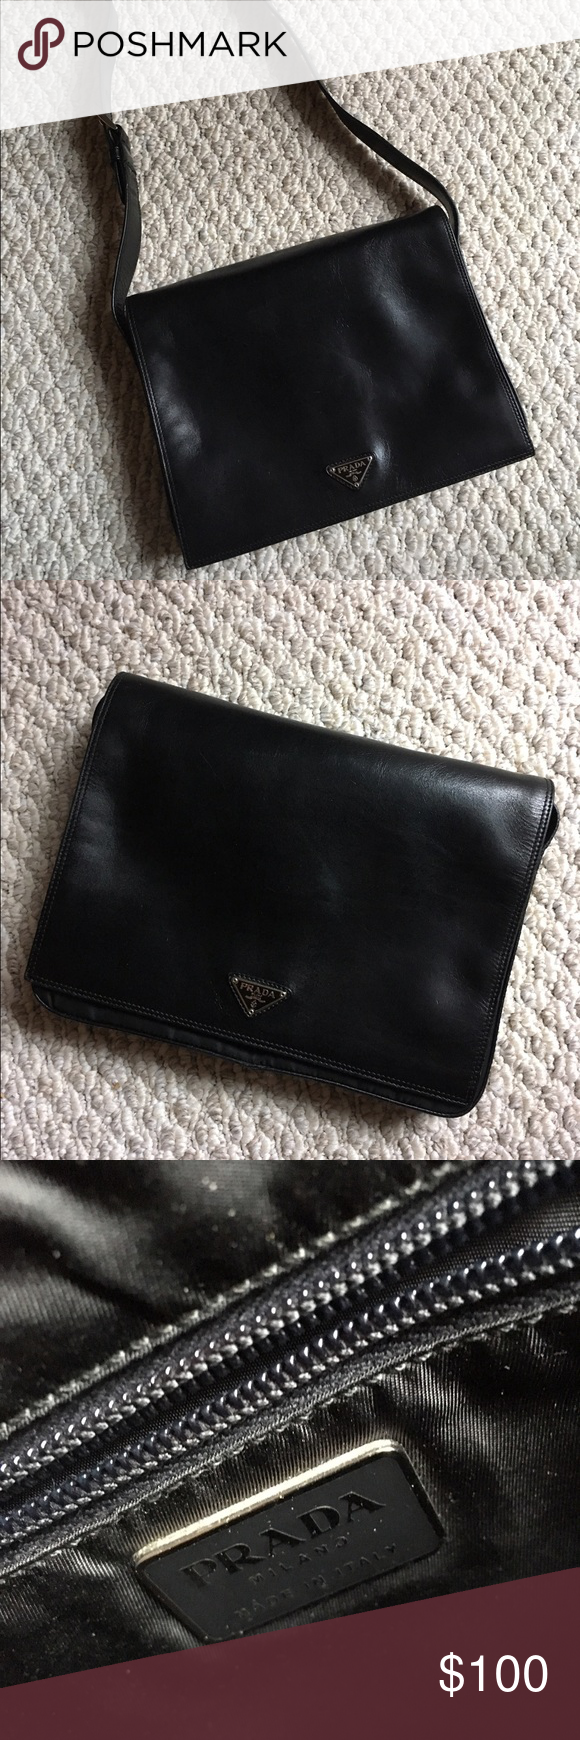 134dda3cf459 ... best price prada clutch black boxy vintage bag from prada. i bought  this from a